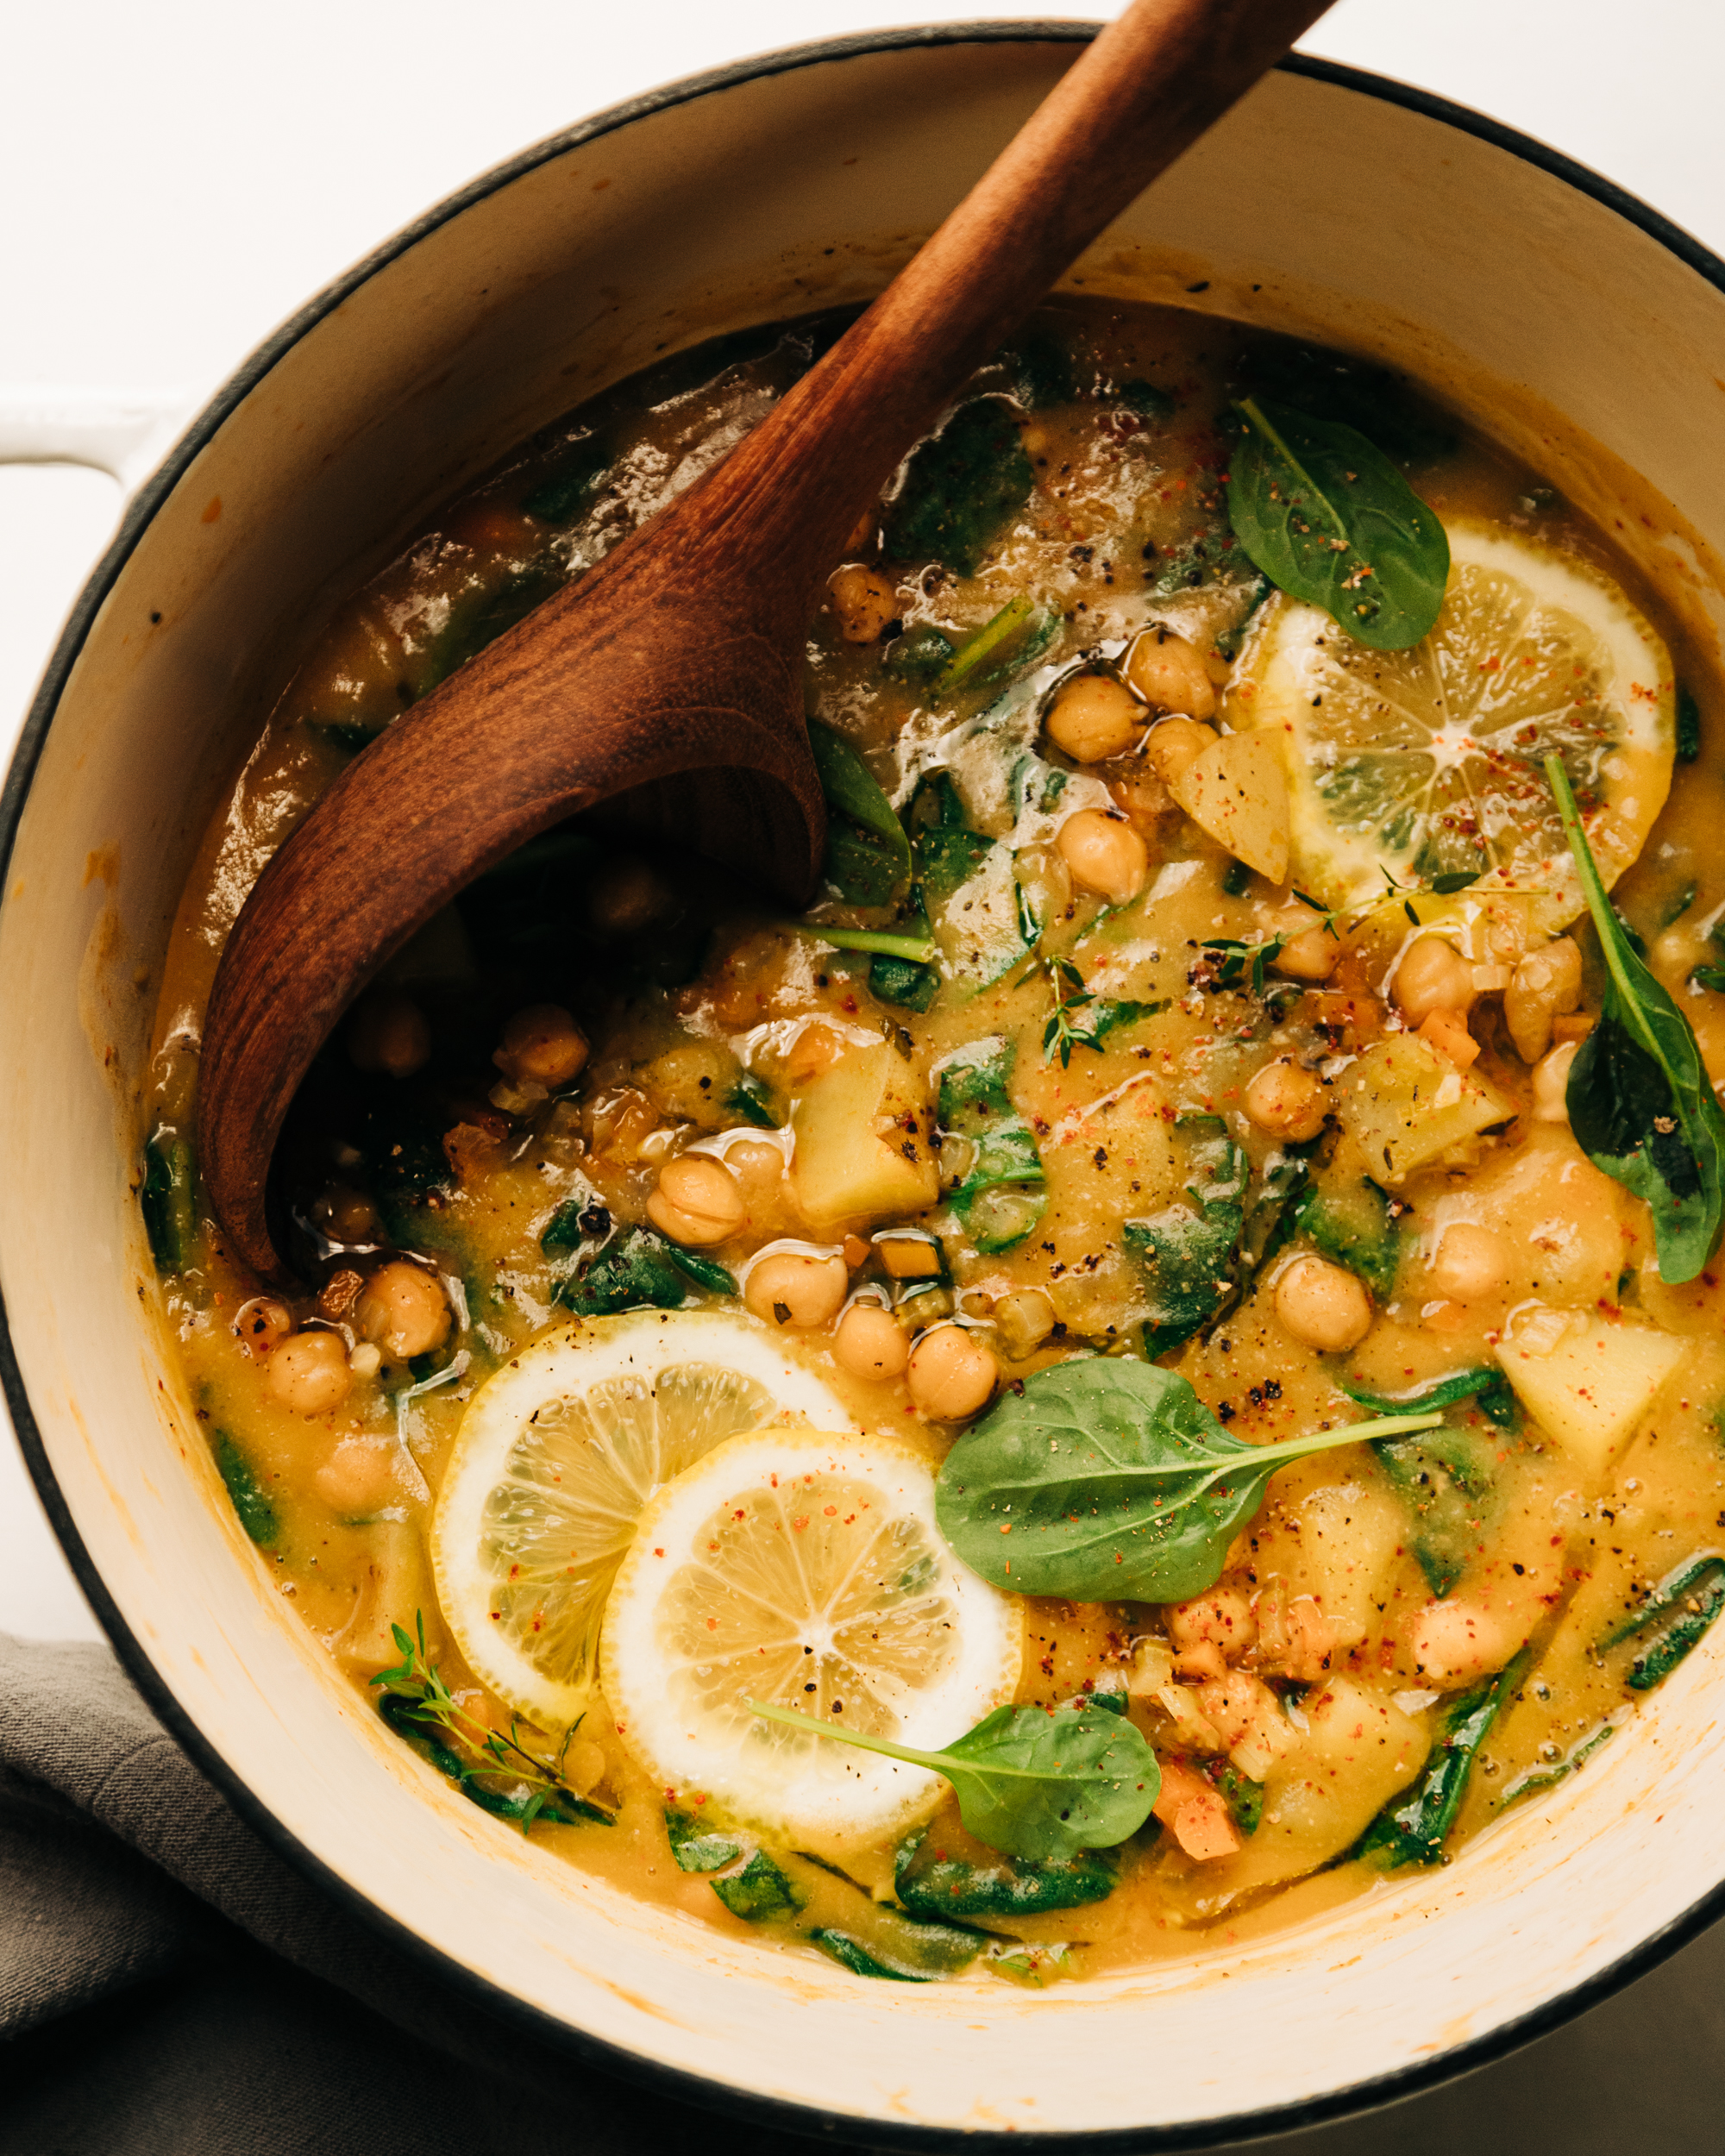 An overhead shot of a creamy and thick lemony chickpea soup with spinach and potatoes. A wooden ladle is sticking out of the pot.